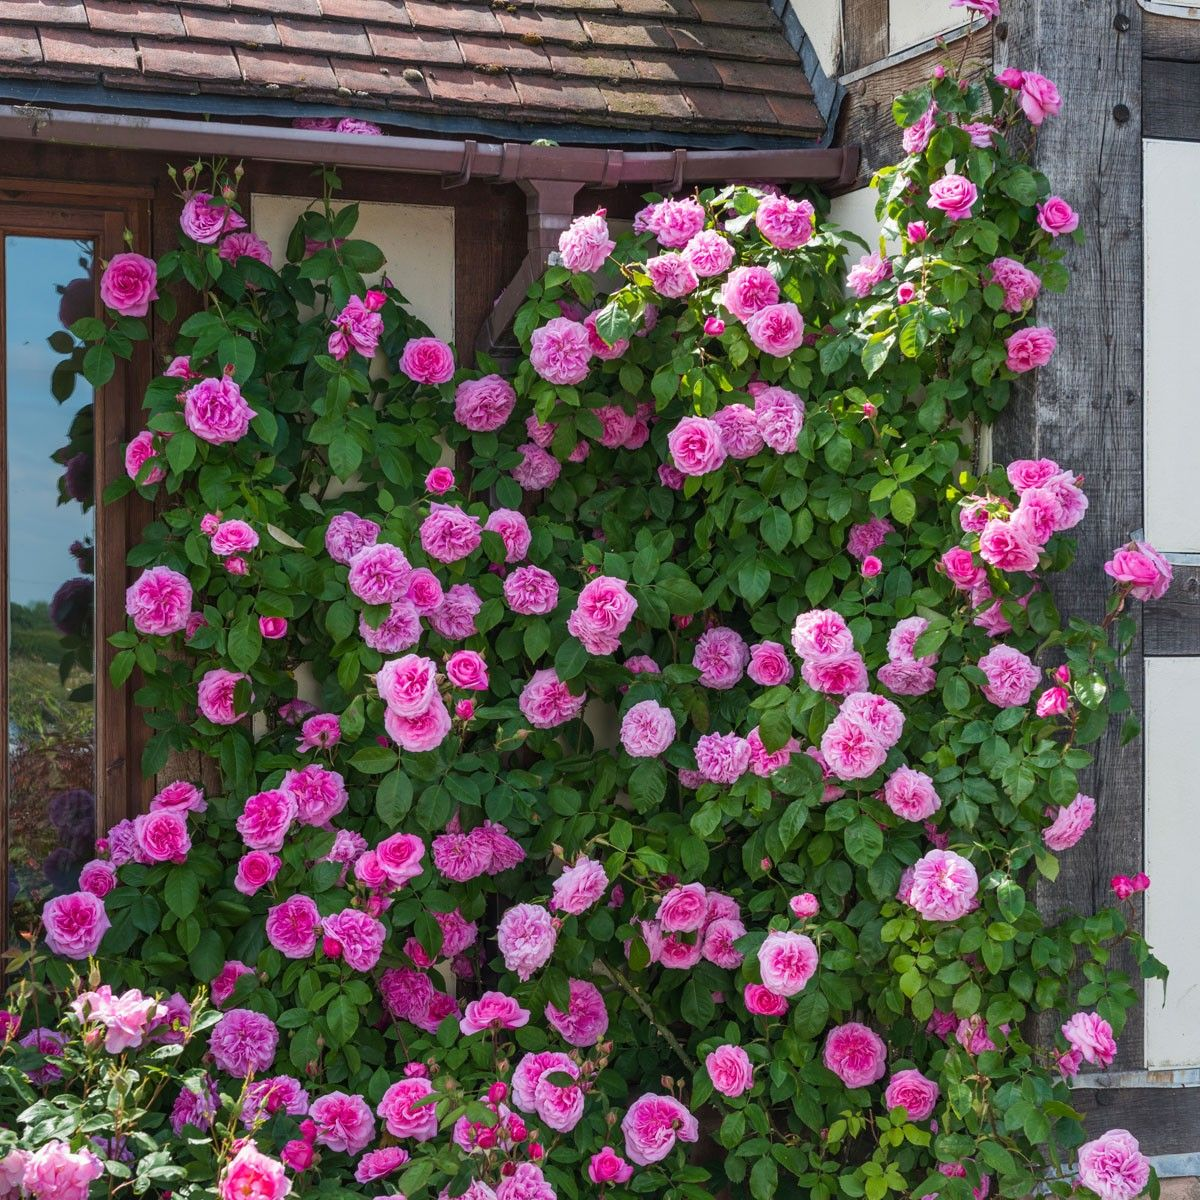 39 gertrude jekyll 39 climbing rose from david austin roses. Black Bedroom Furniture Sets. Home Design Ideas